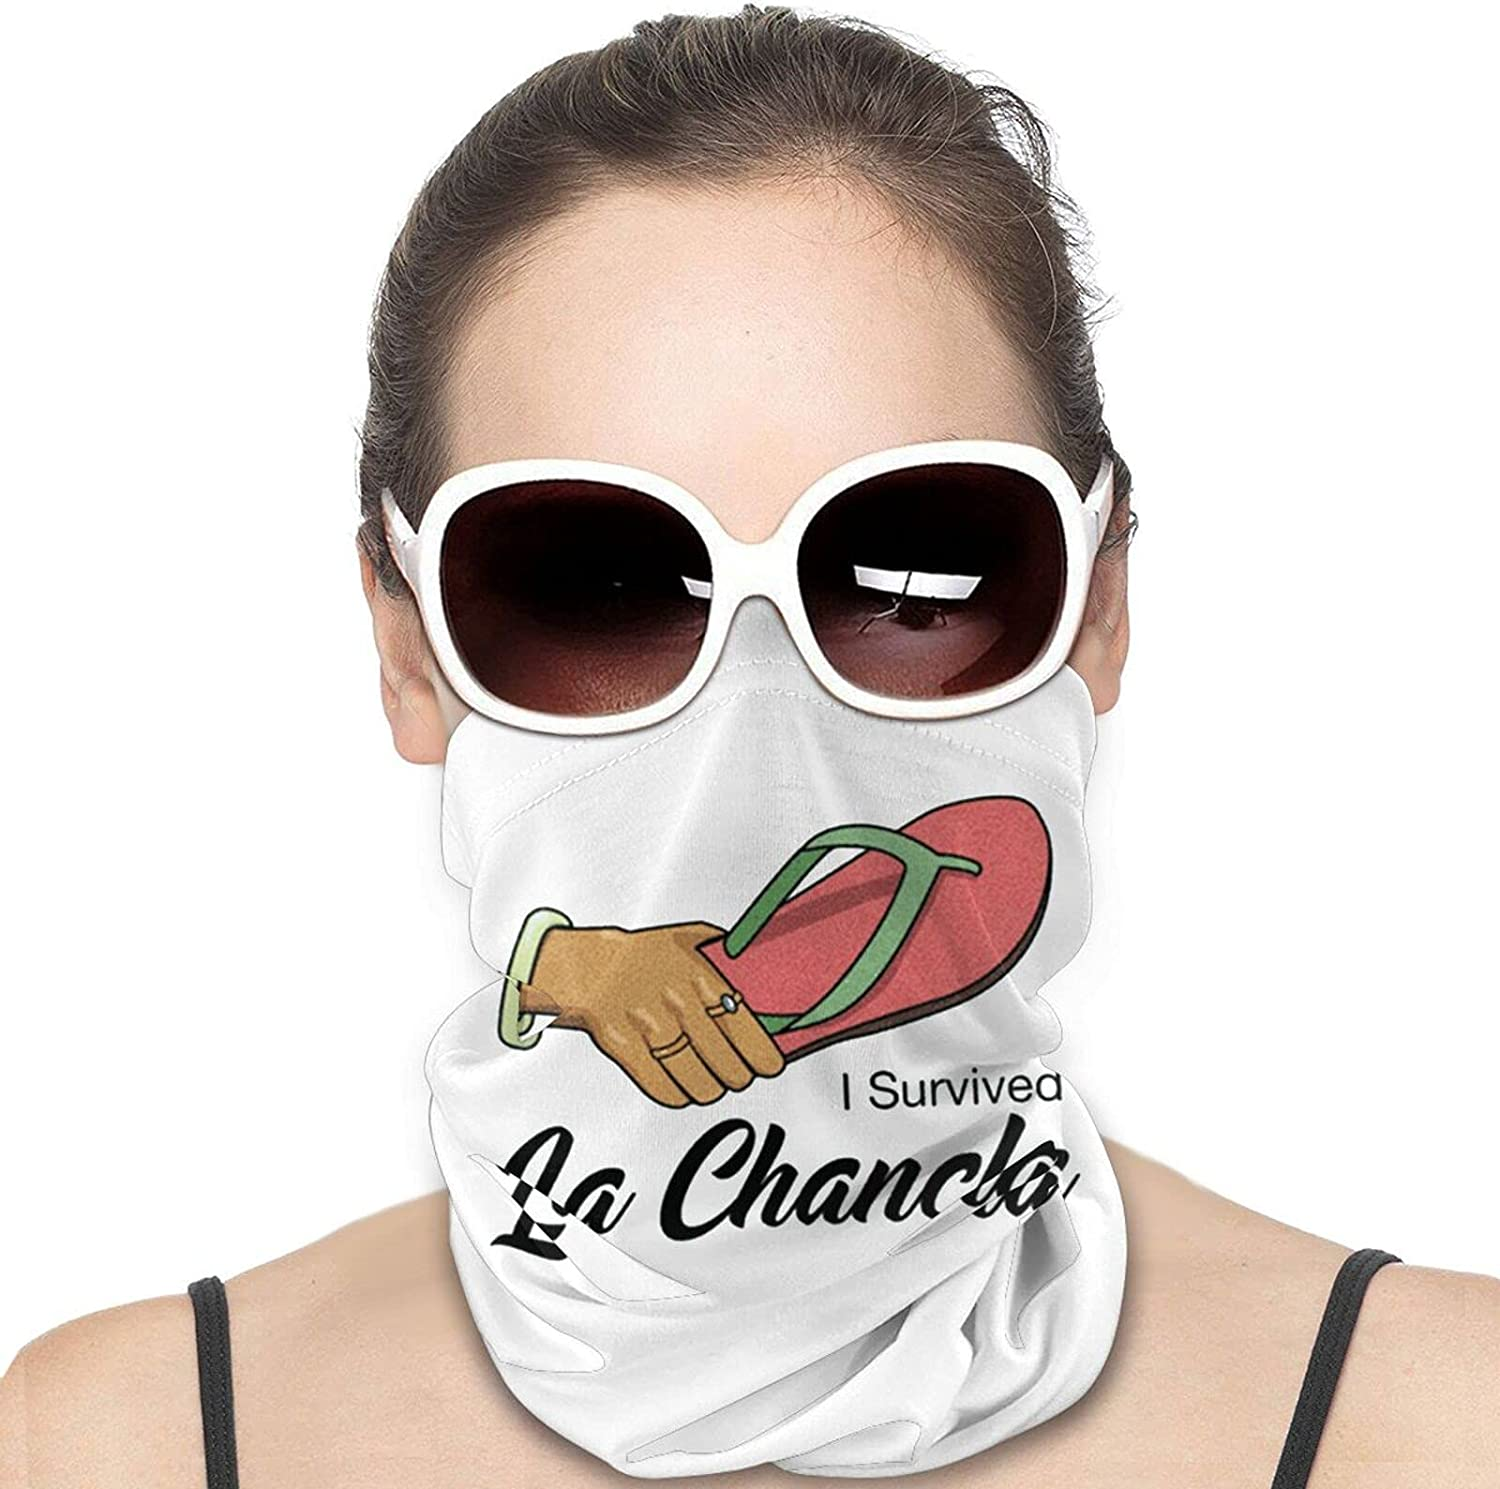 I Survived La Chancla Round Neck Gaiter Bandnas Face Cover Uv Protection Prevent bask in Ice Scarf Headbands Perfect for Motorcycle Cycling Running Festival Raves Outdoors